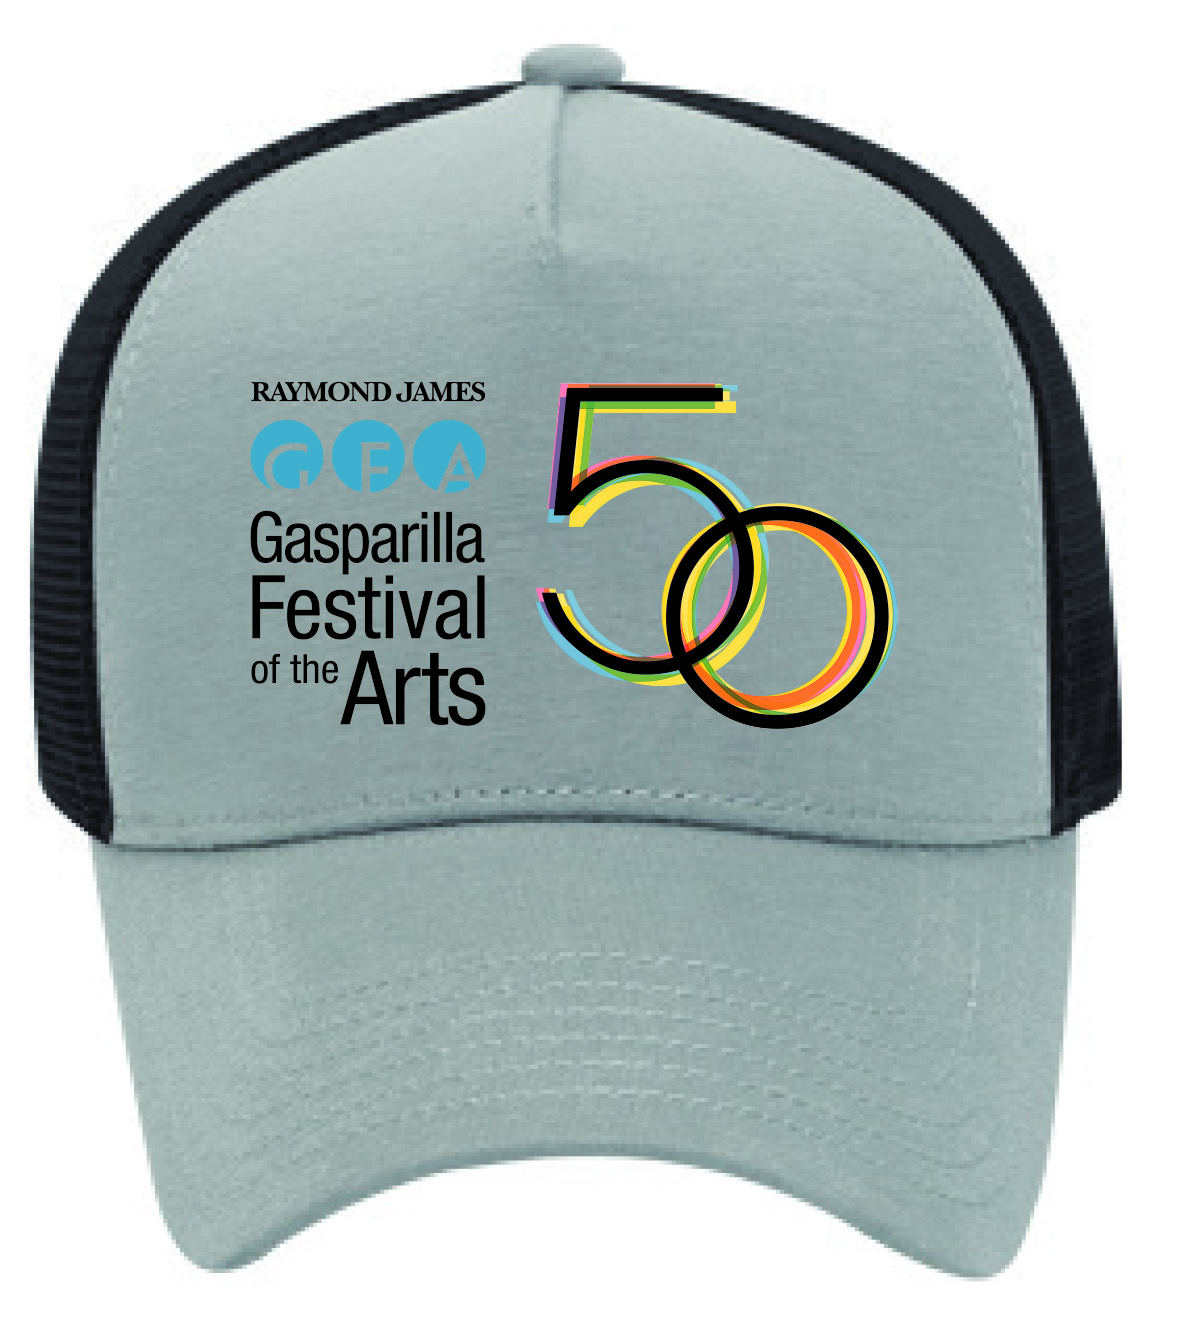 50th Anniversary Commemorative Hat